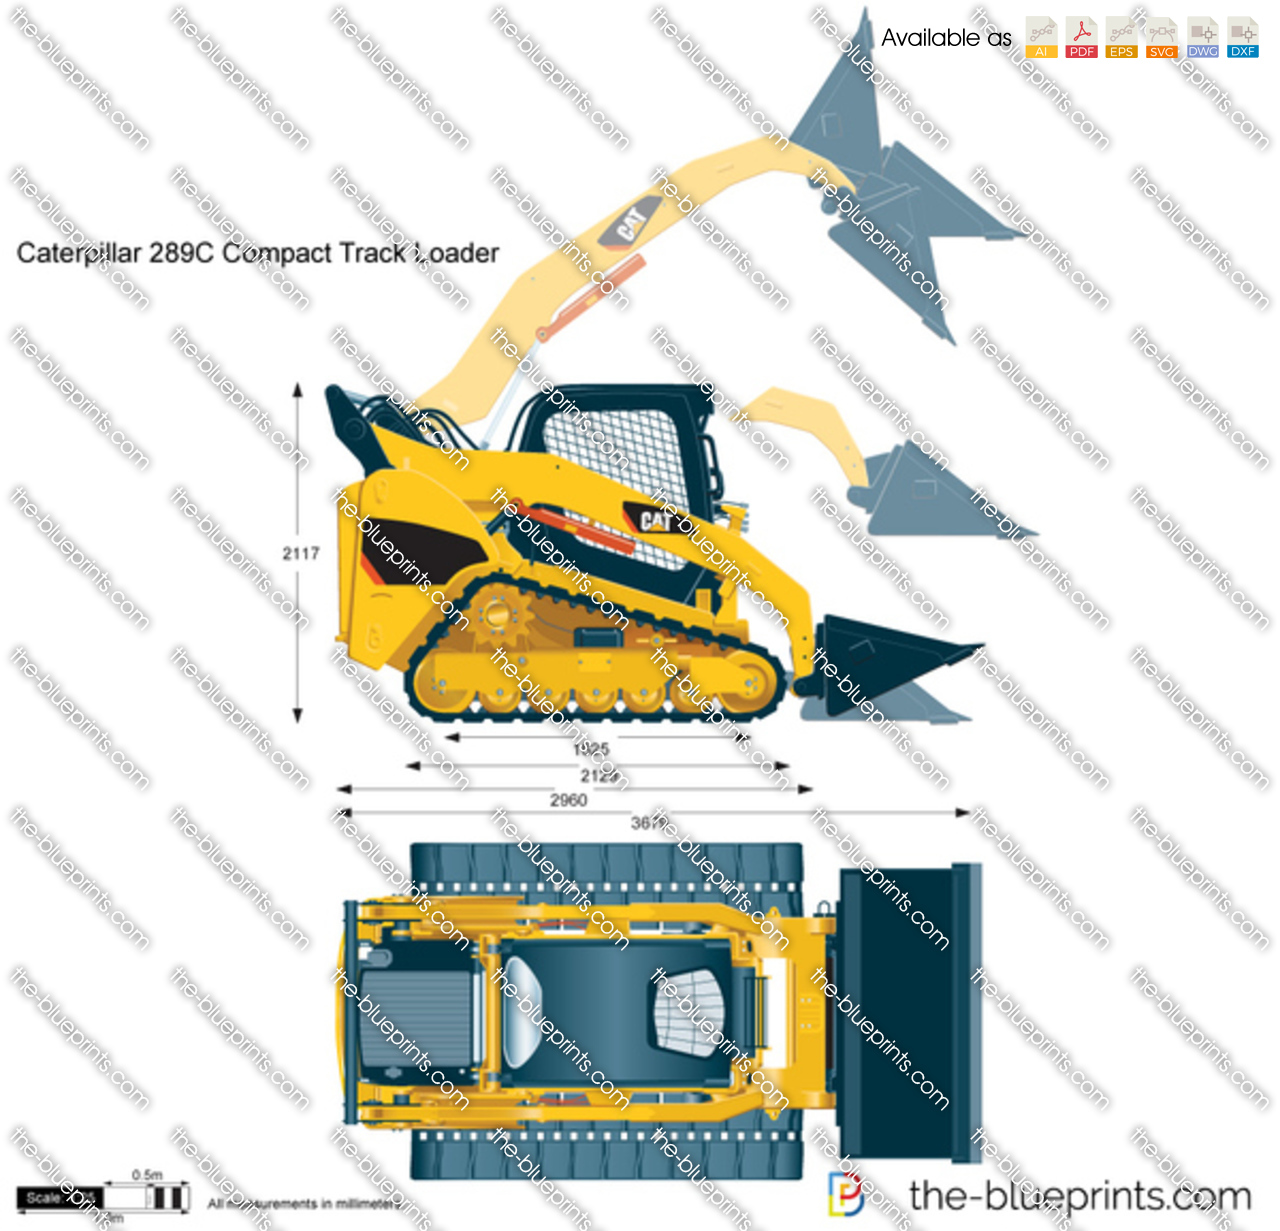 Caterpillar 289C Compact Track Loader